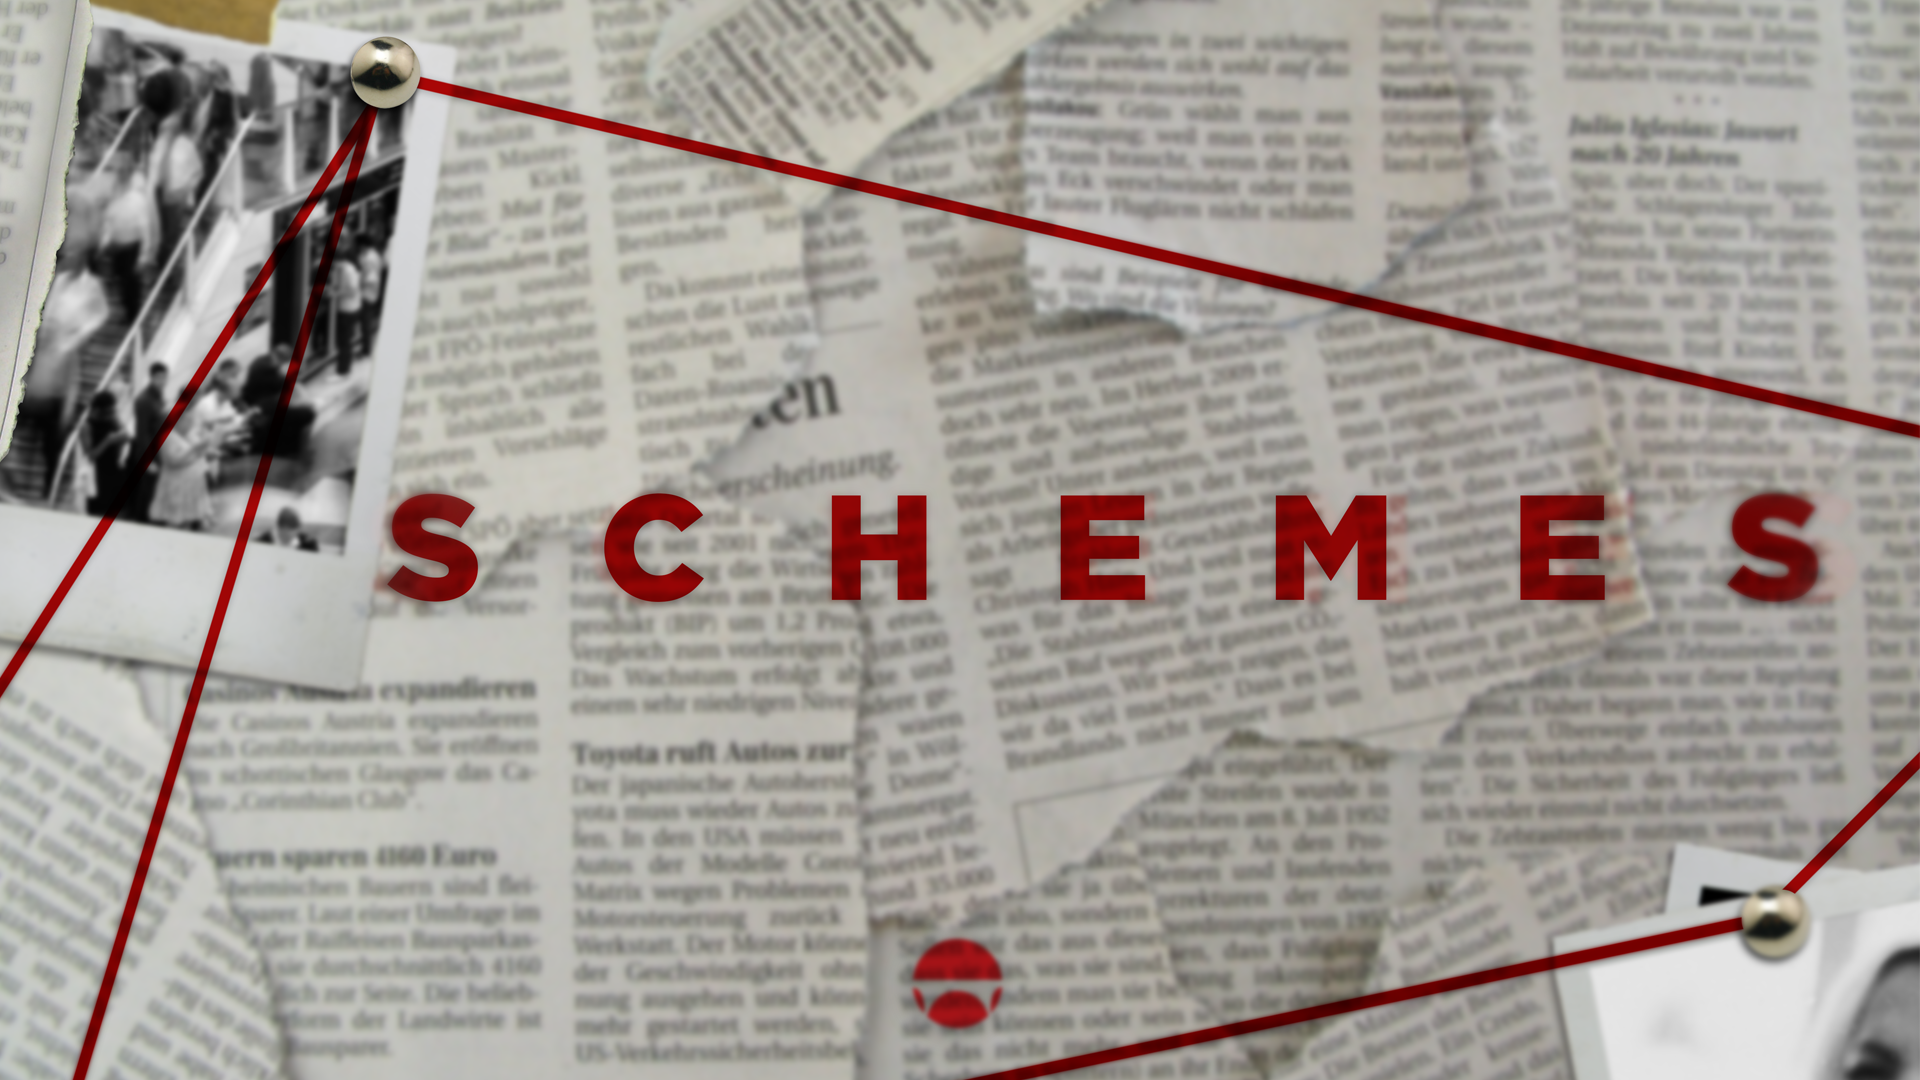 Schemes: Scheme 2 - The Lie